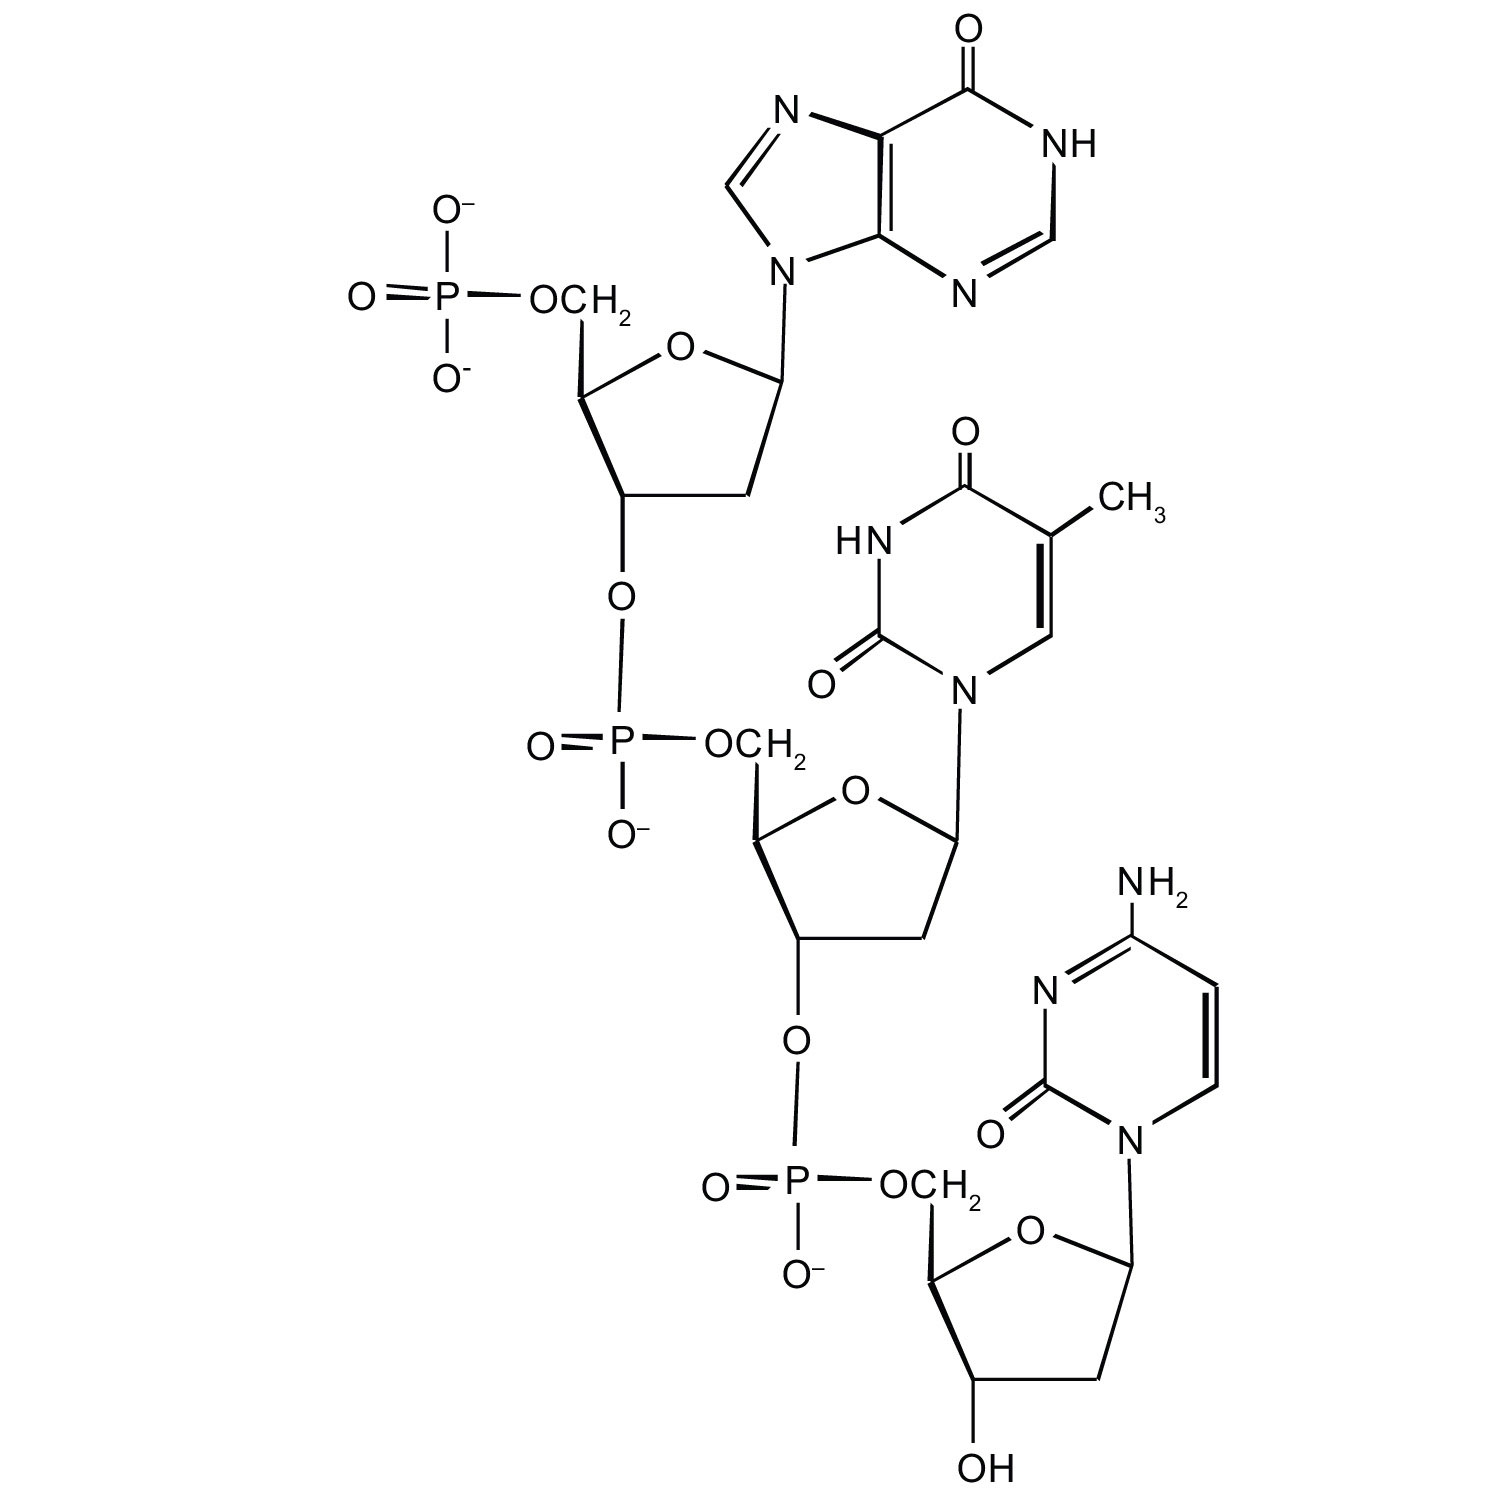 Nucleic Acid Structure Dna Nucleic Acid Structure